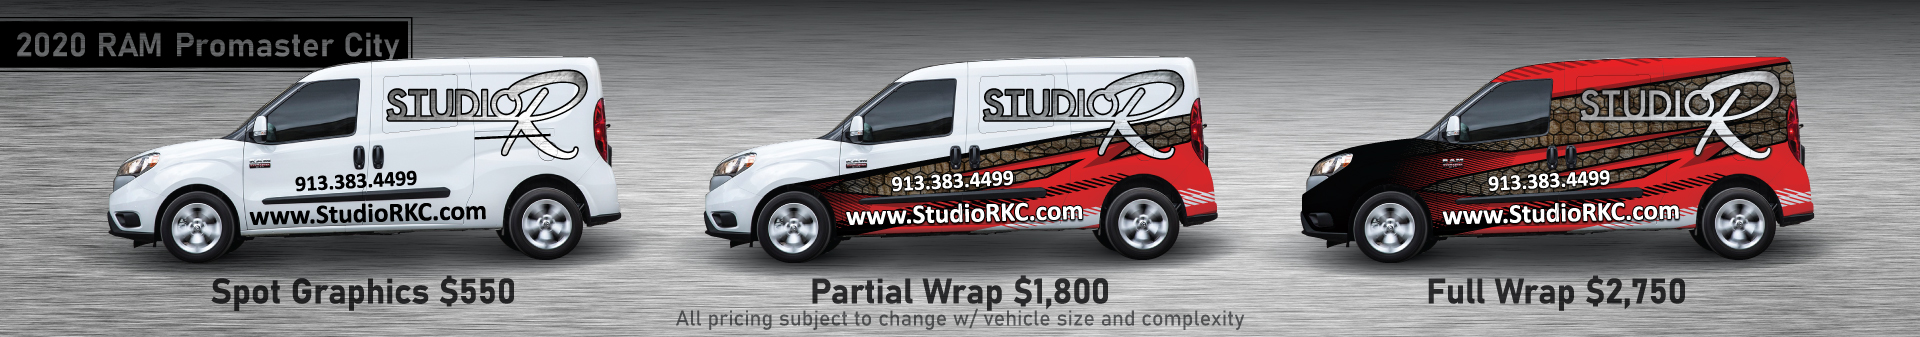 RAM ProMaster City displayed with Spot, Partial, and Full Wrap graphic layouts and potential pricing